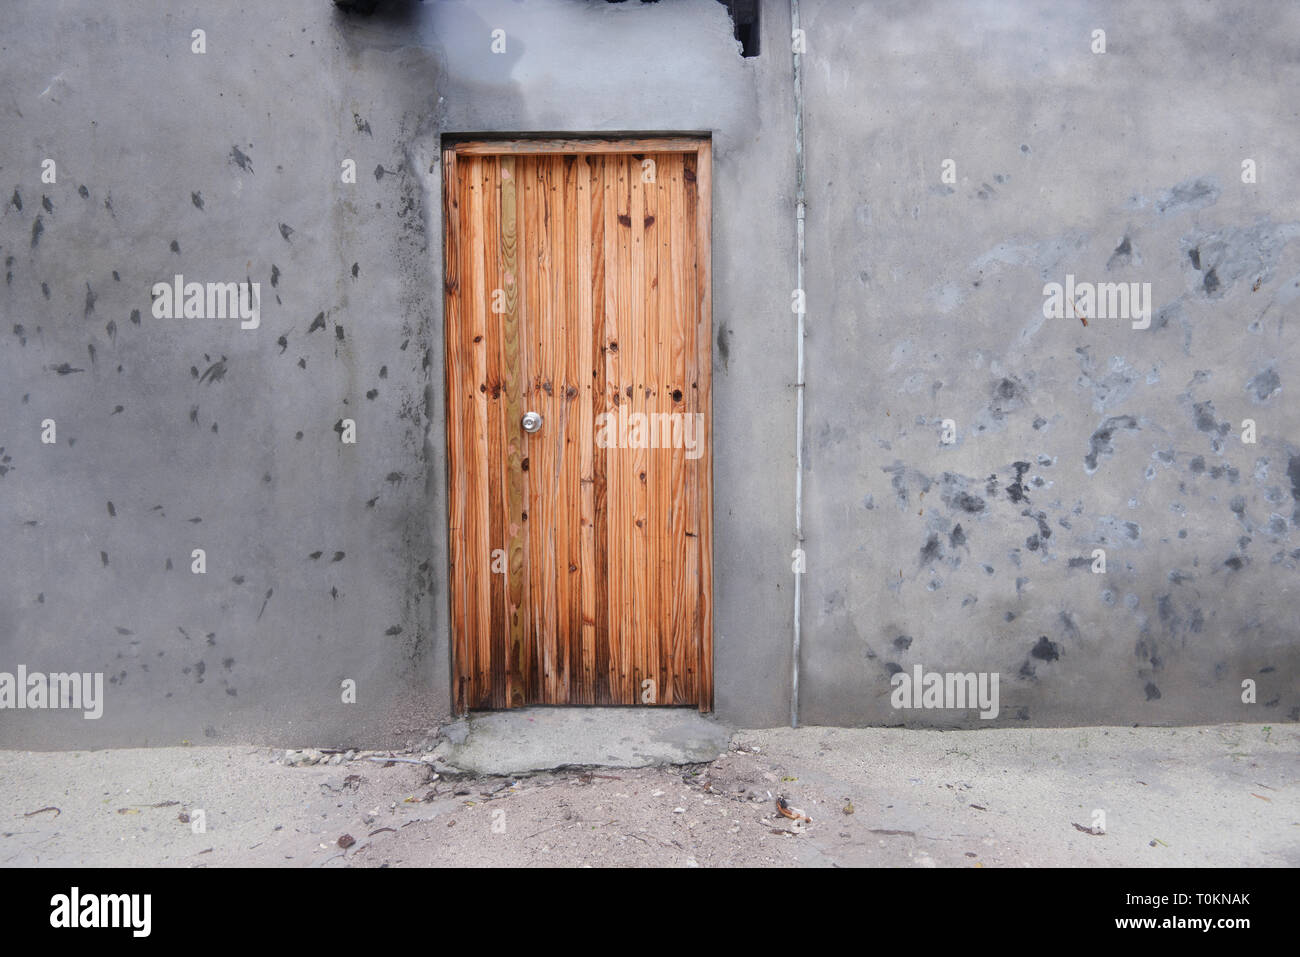 Wooden door and old gray wall - Stock Image